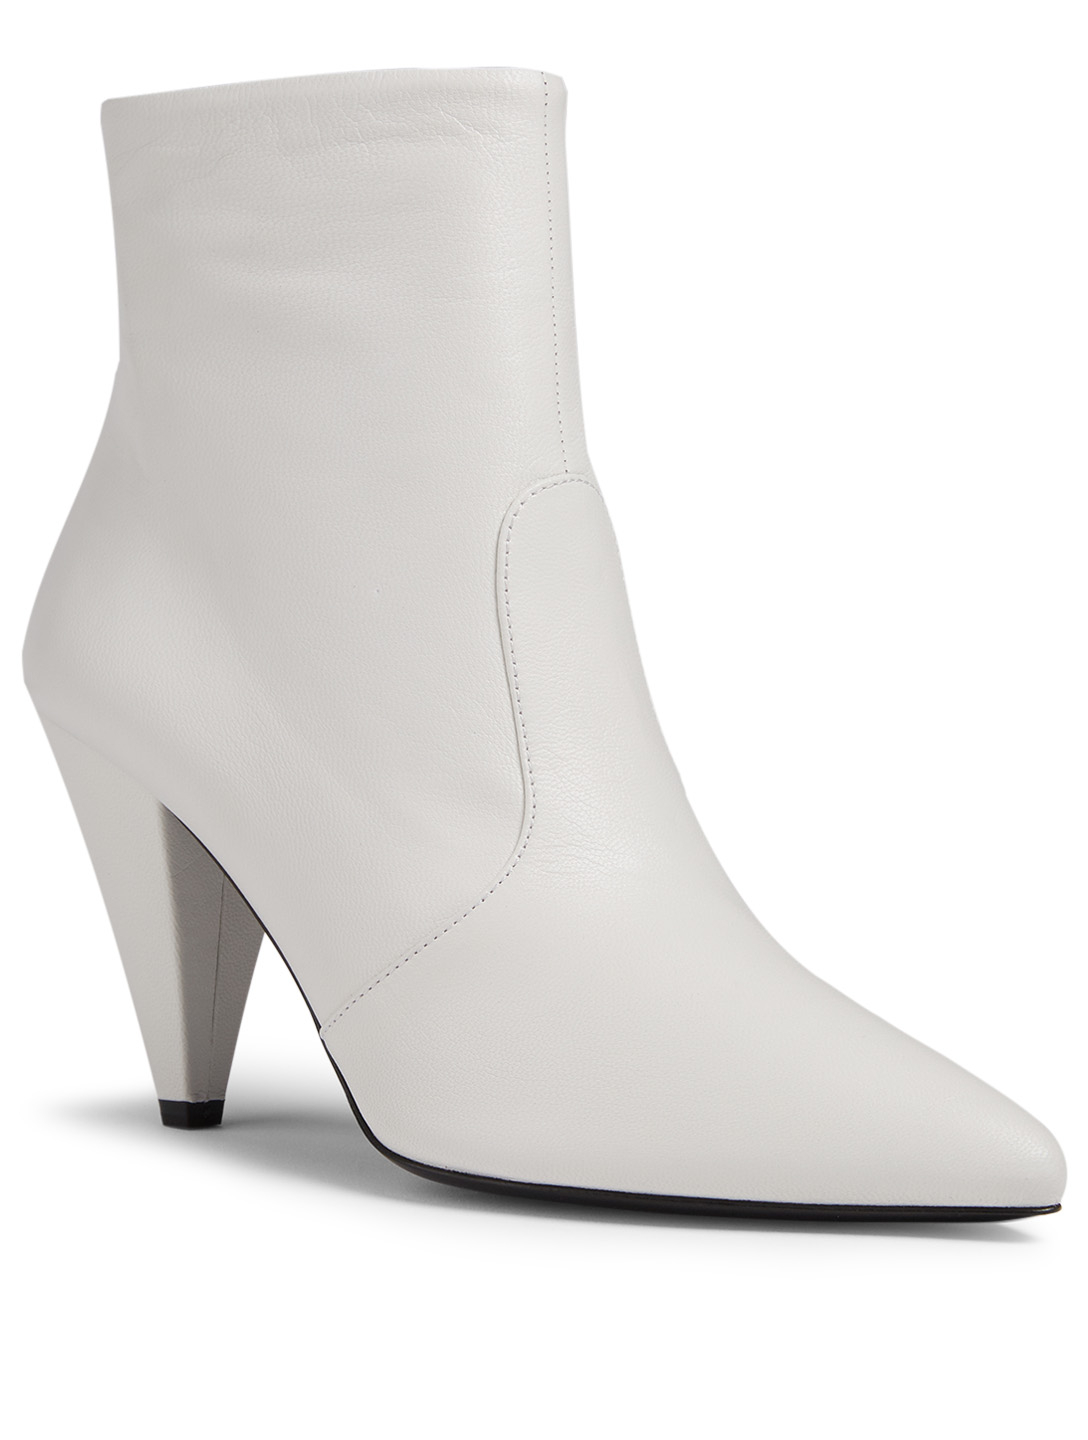 PRADA Leather Ankle Boots Women's White